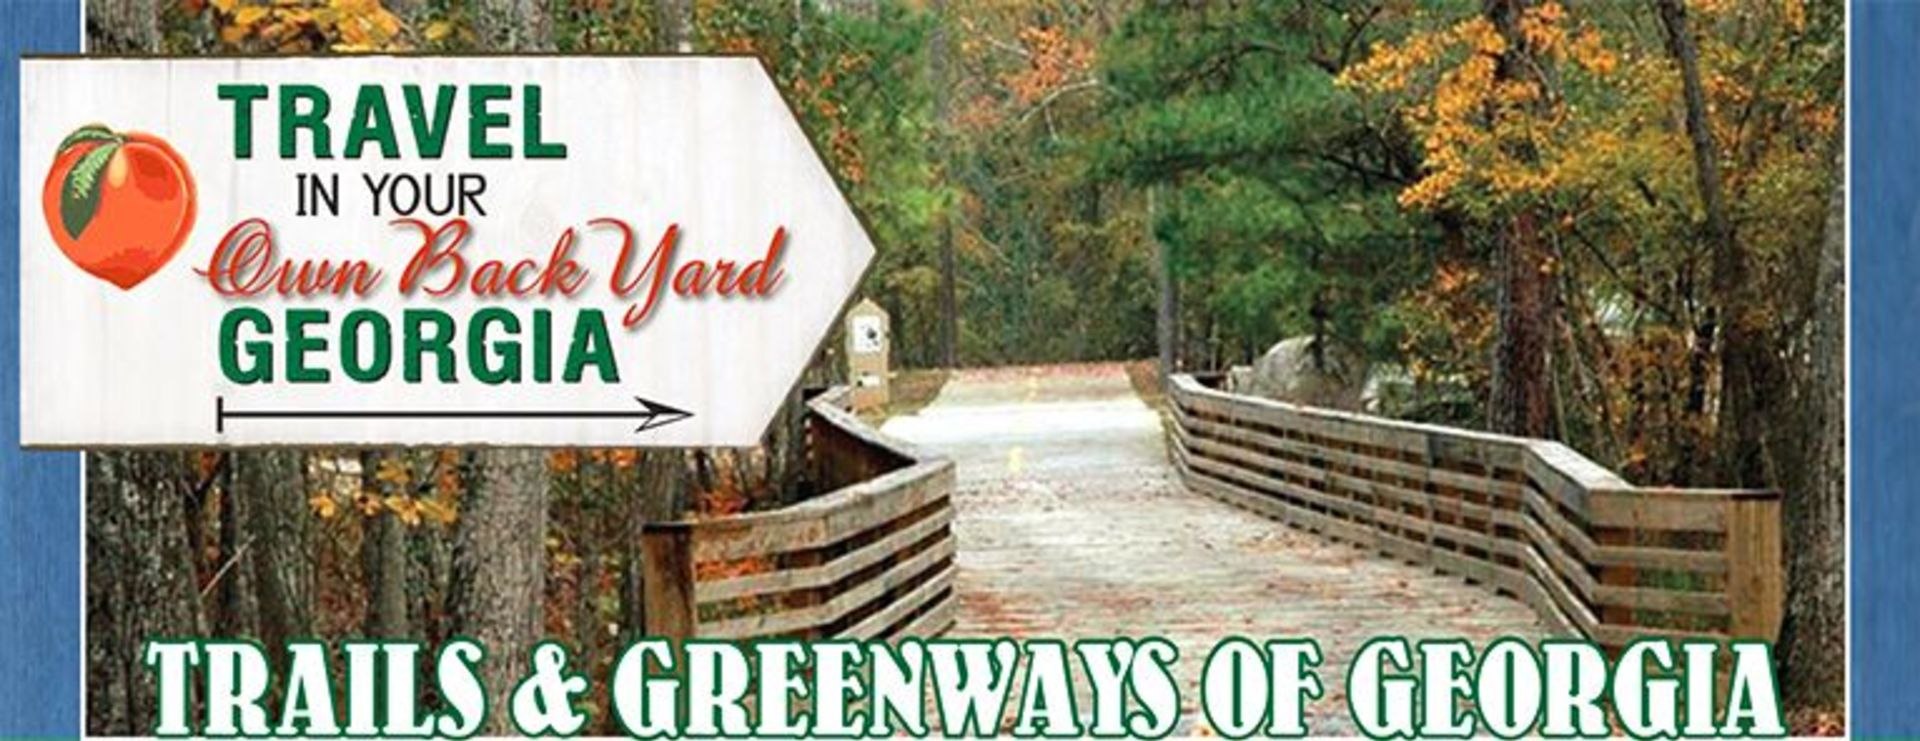 GEORGIA TRAILS & GREENWAYS